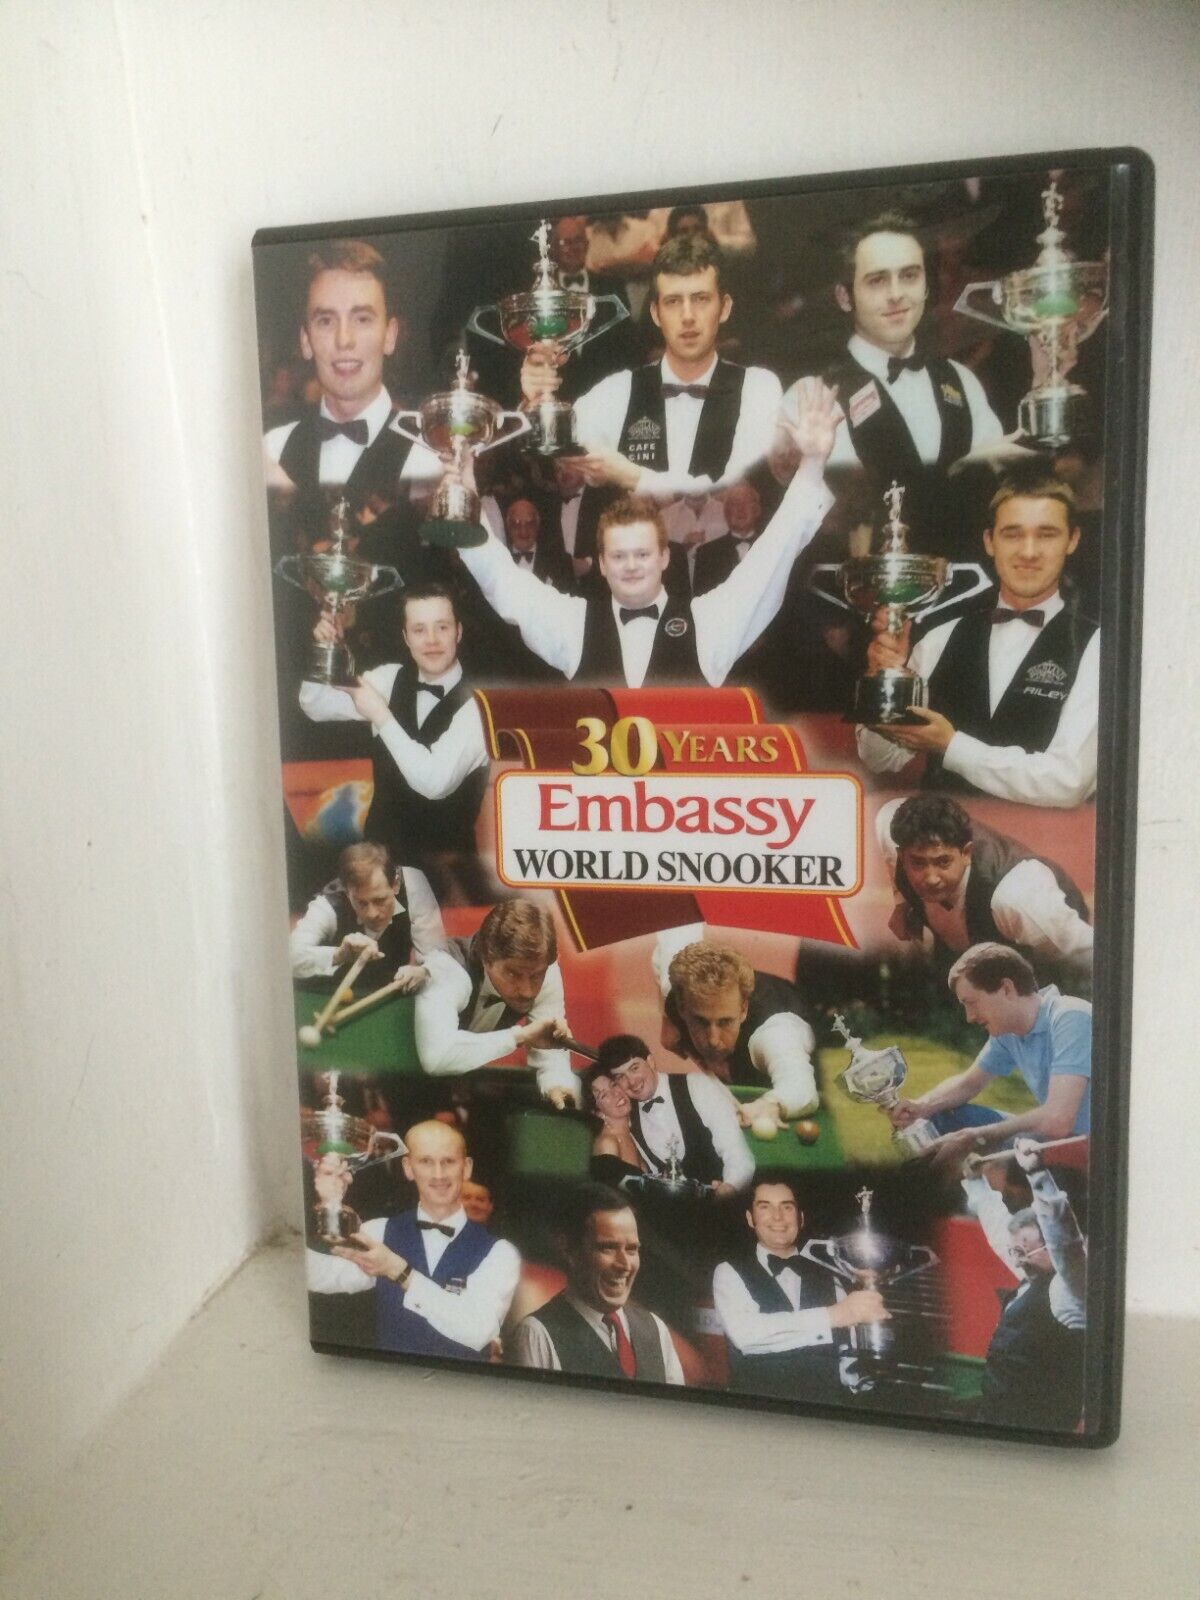 EMBASSY 30 YEARS OF WORLD SNOOKER 1976 TO 2005  DVD